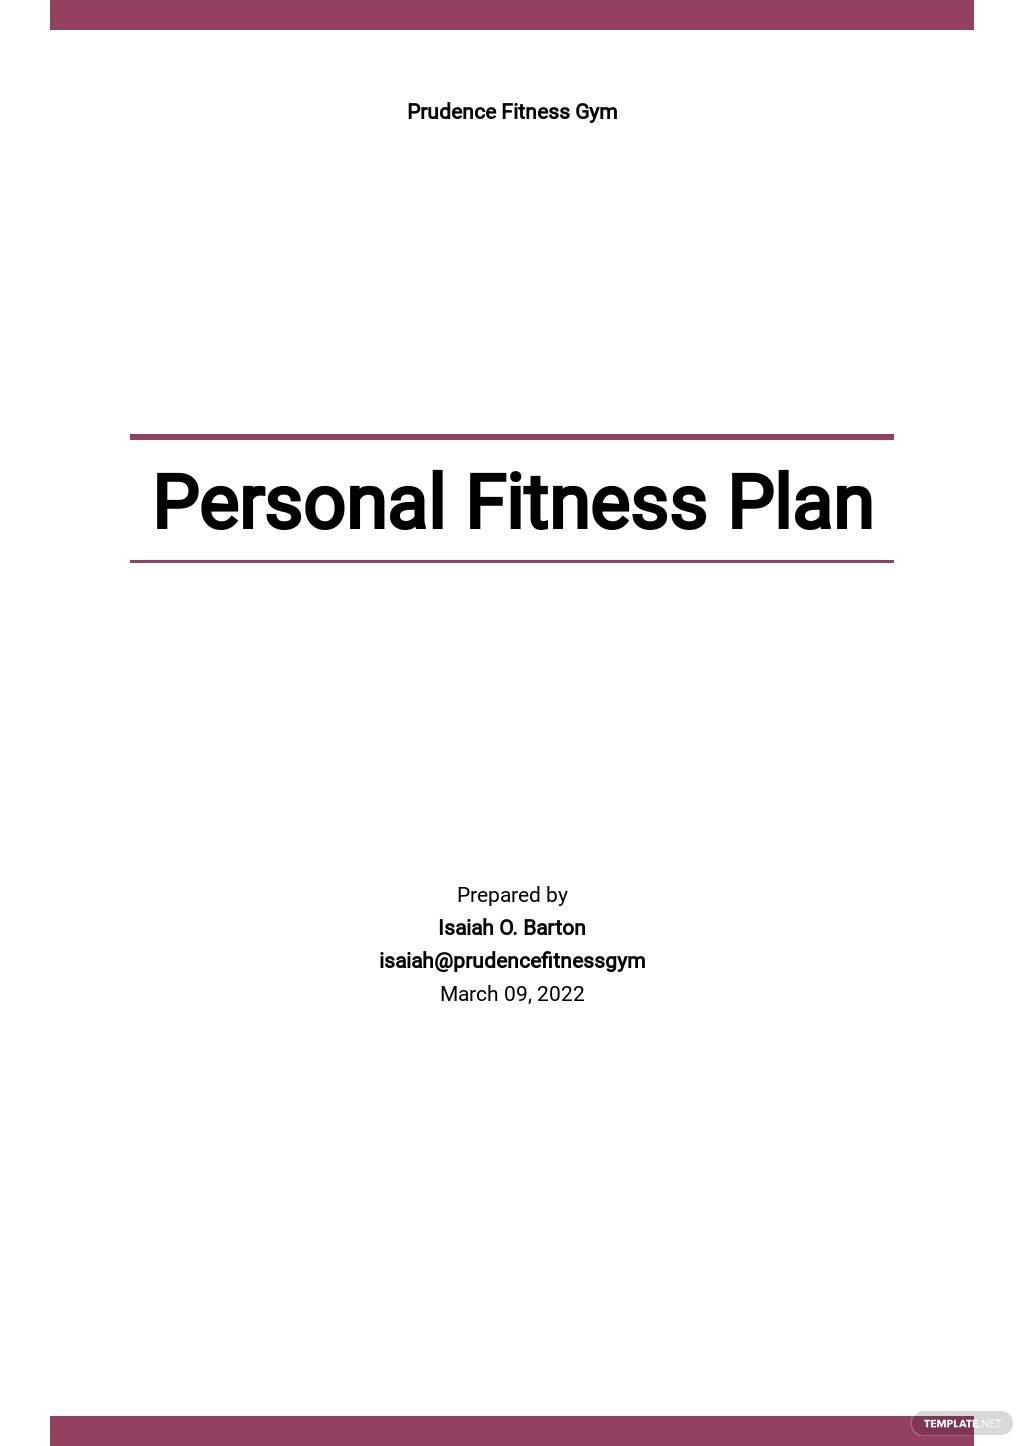 Personal Fitness Plan Template